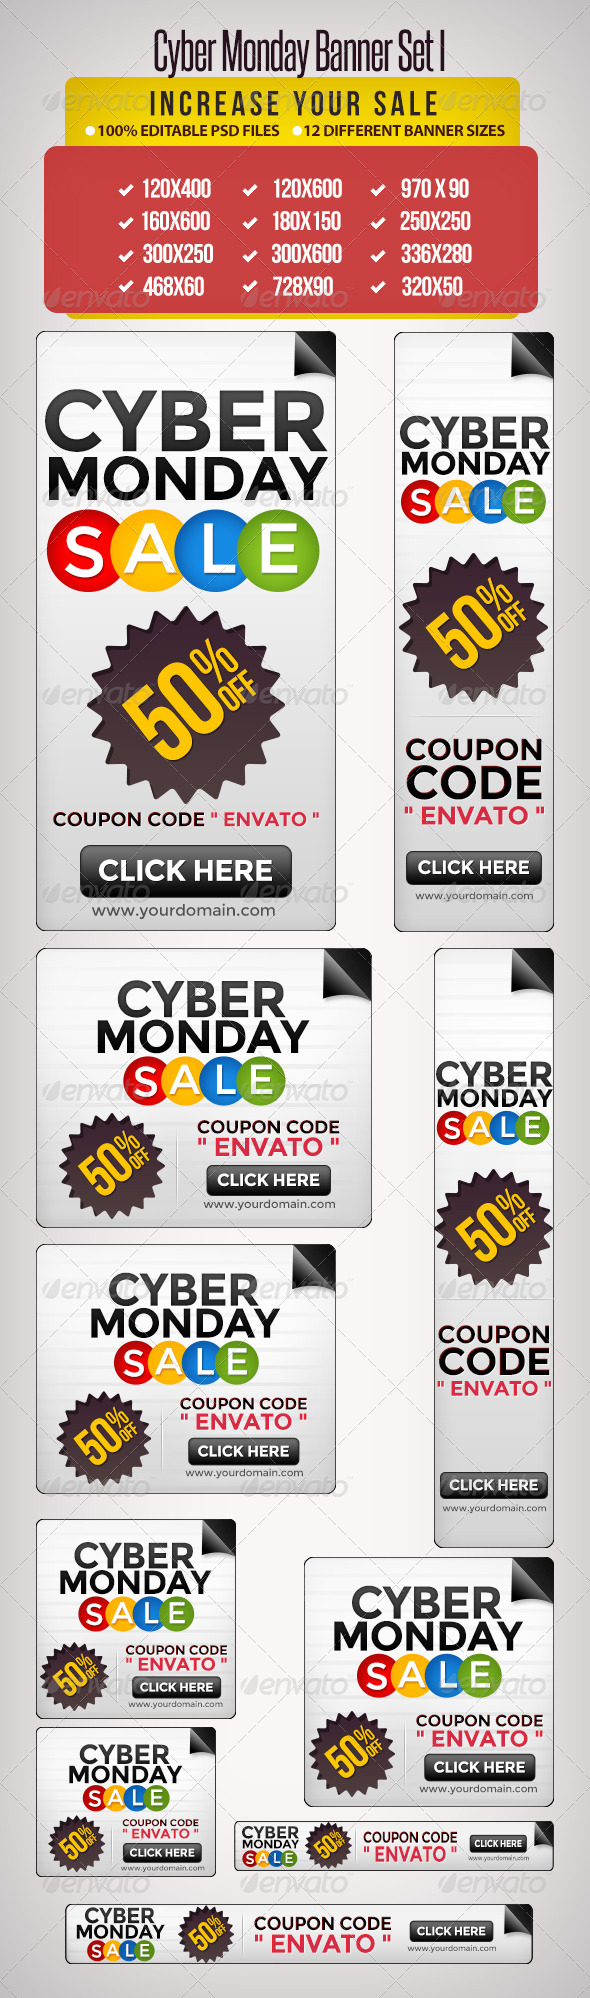 GraphicRiver Cyber Monday Banners Set I 5573104